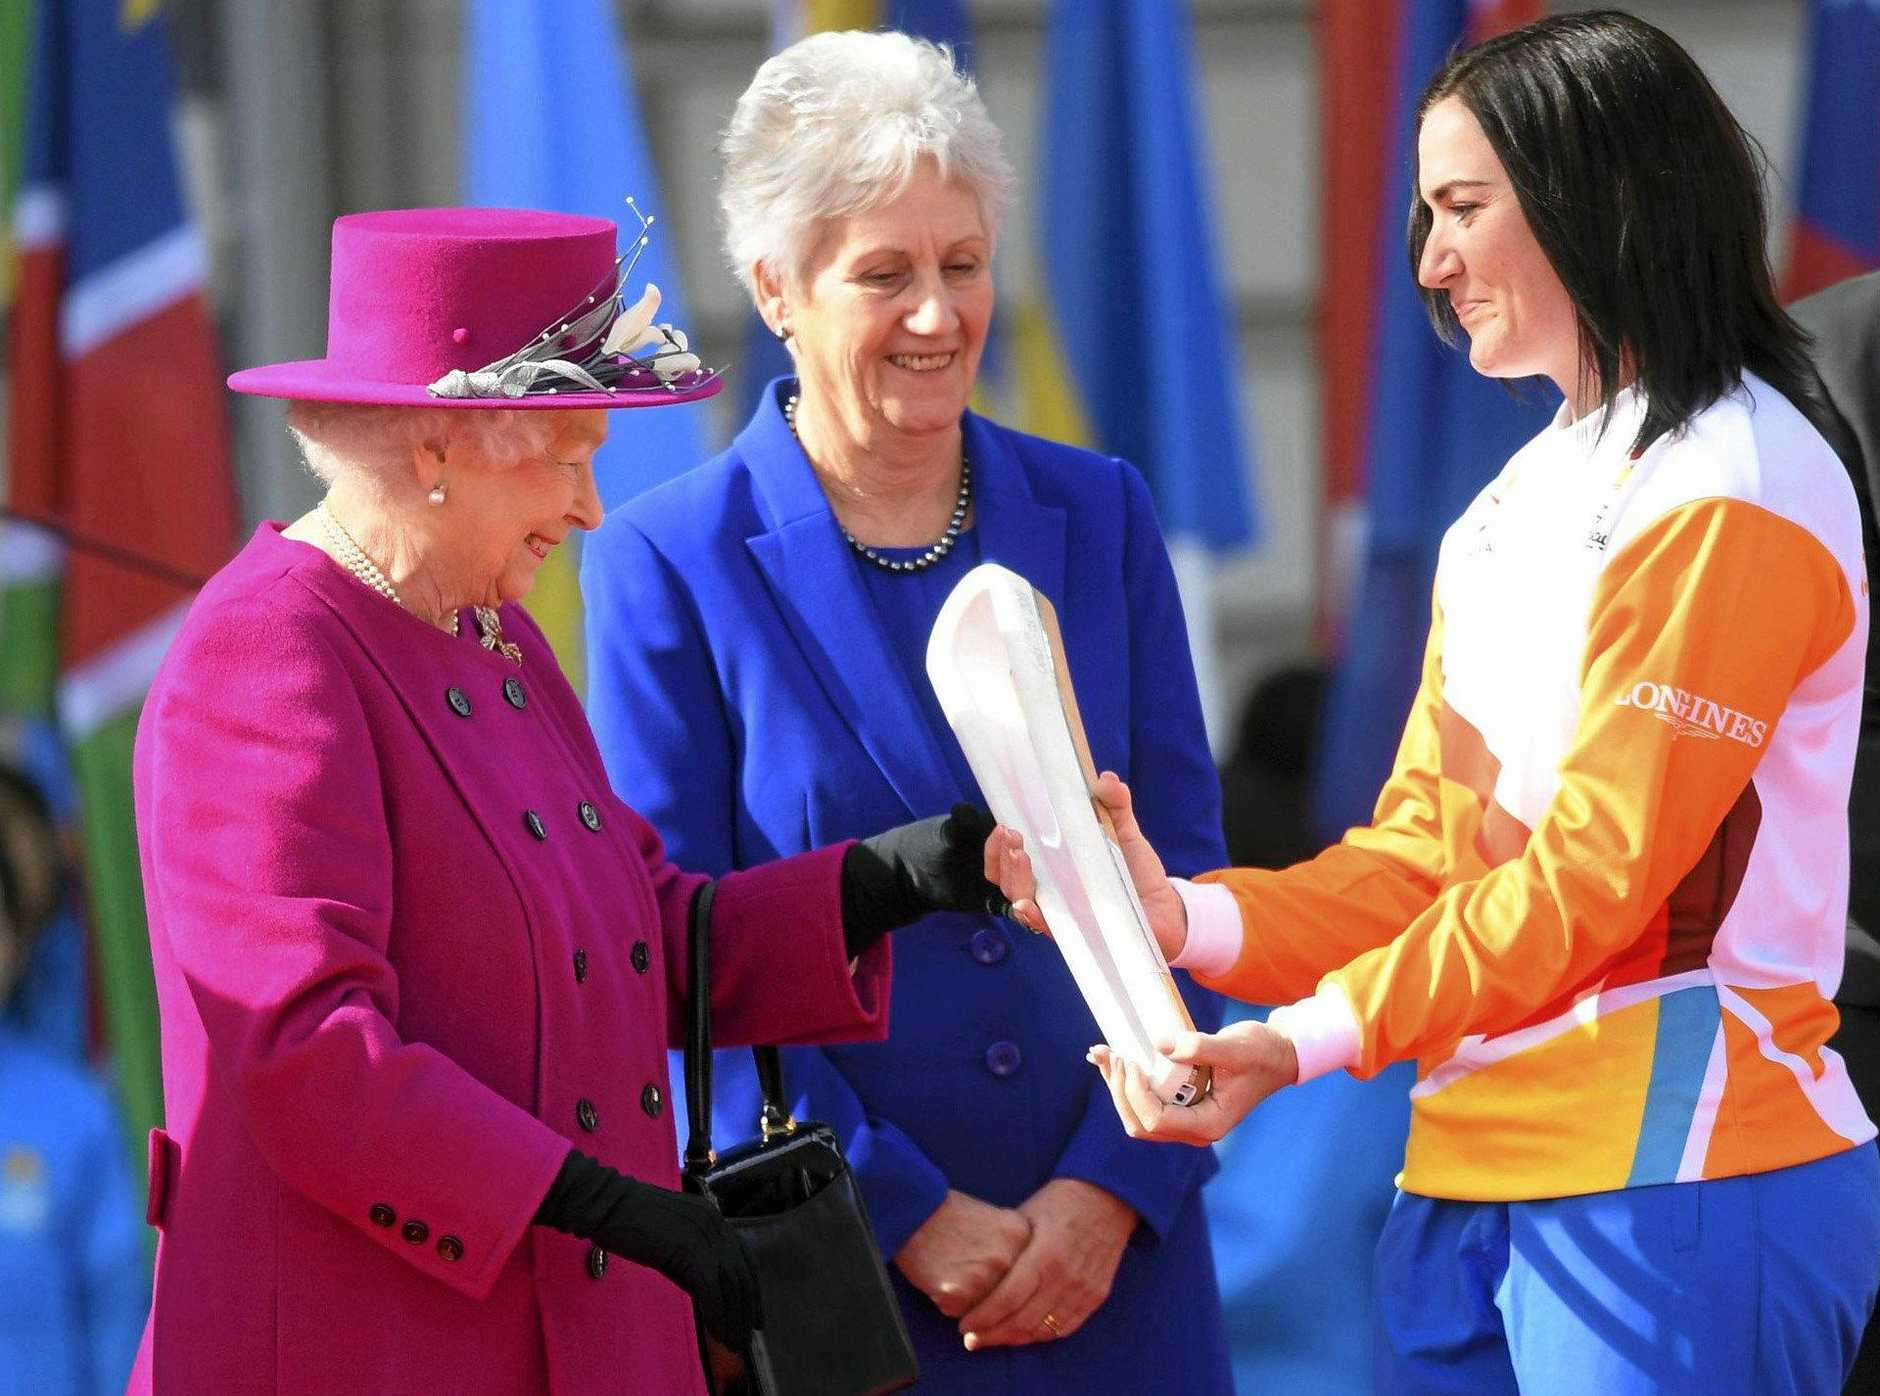 Retired cyclist Anna Meares, right, receives the Commonwealth Games relay baton from Britain's Queen Elizabeth II, left, at the launch of the relay at Buckingham Palace in London in May, 2017. The XXI Commonwealth Games are being held on the Gold Coast in Australia in 2018.